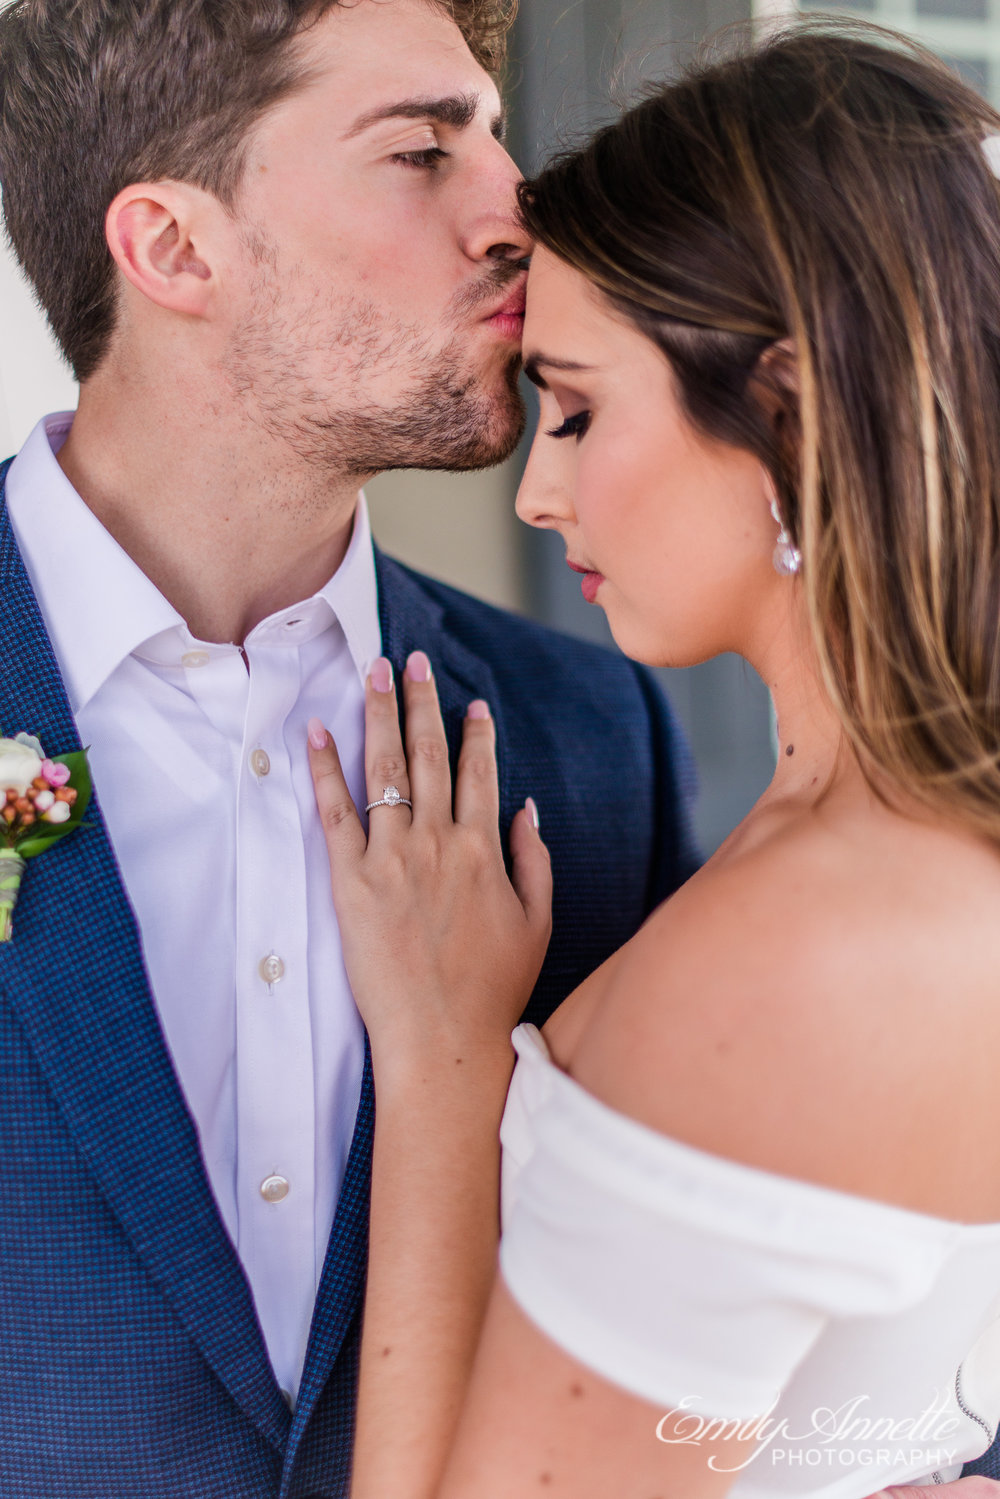 A groom kisses the forehead of his bride as she looks down at her wedding ring on their wedding day at Fleetwood Farm Winery in Leesburg, Virginia